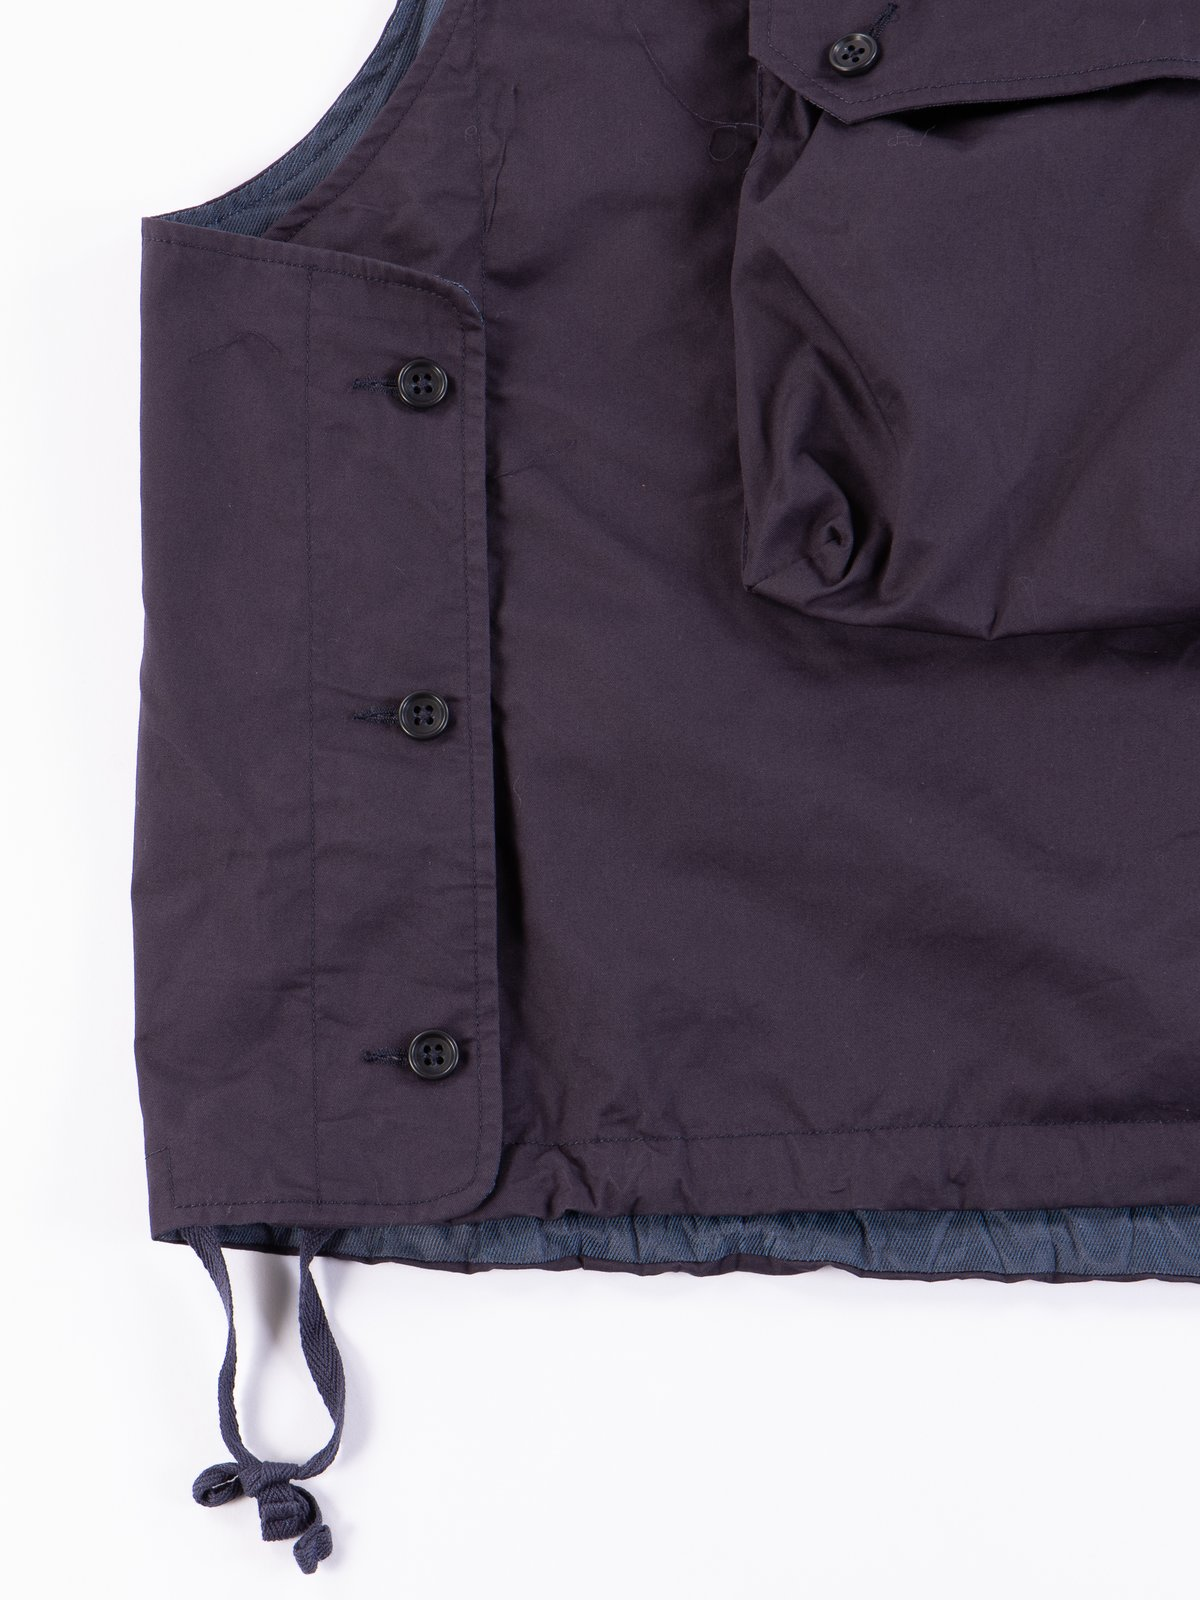 Dark Navy High Count Twill Cover Vest - Image 4